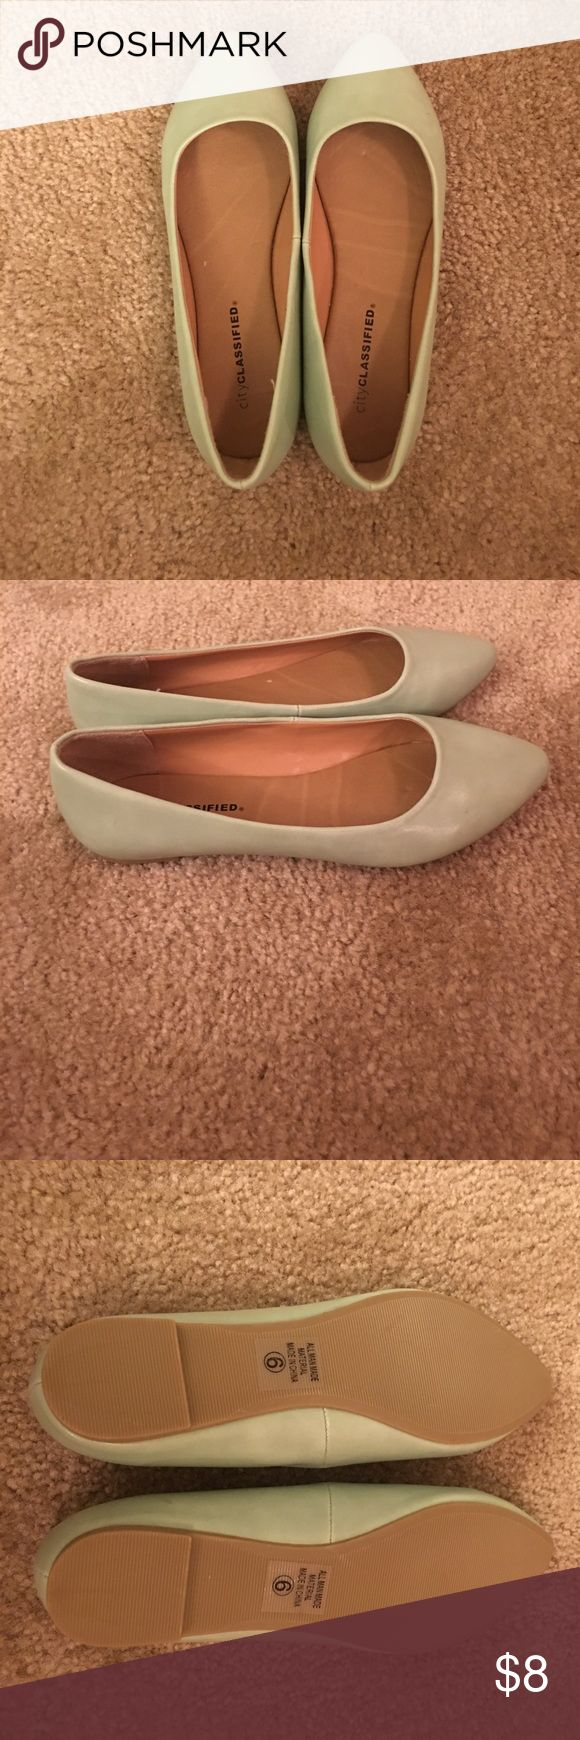 "City Classified Seafoam Mint Green Flats Never worn. Doesn't have a box. Small ""scuff"" on left shoe as shown- not noticeable in my opinion. Seafoam green/pastel green/mint green color. Pretty for spring/summer. Forever 21 Shoes Flats & Loafers"